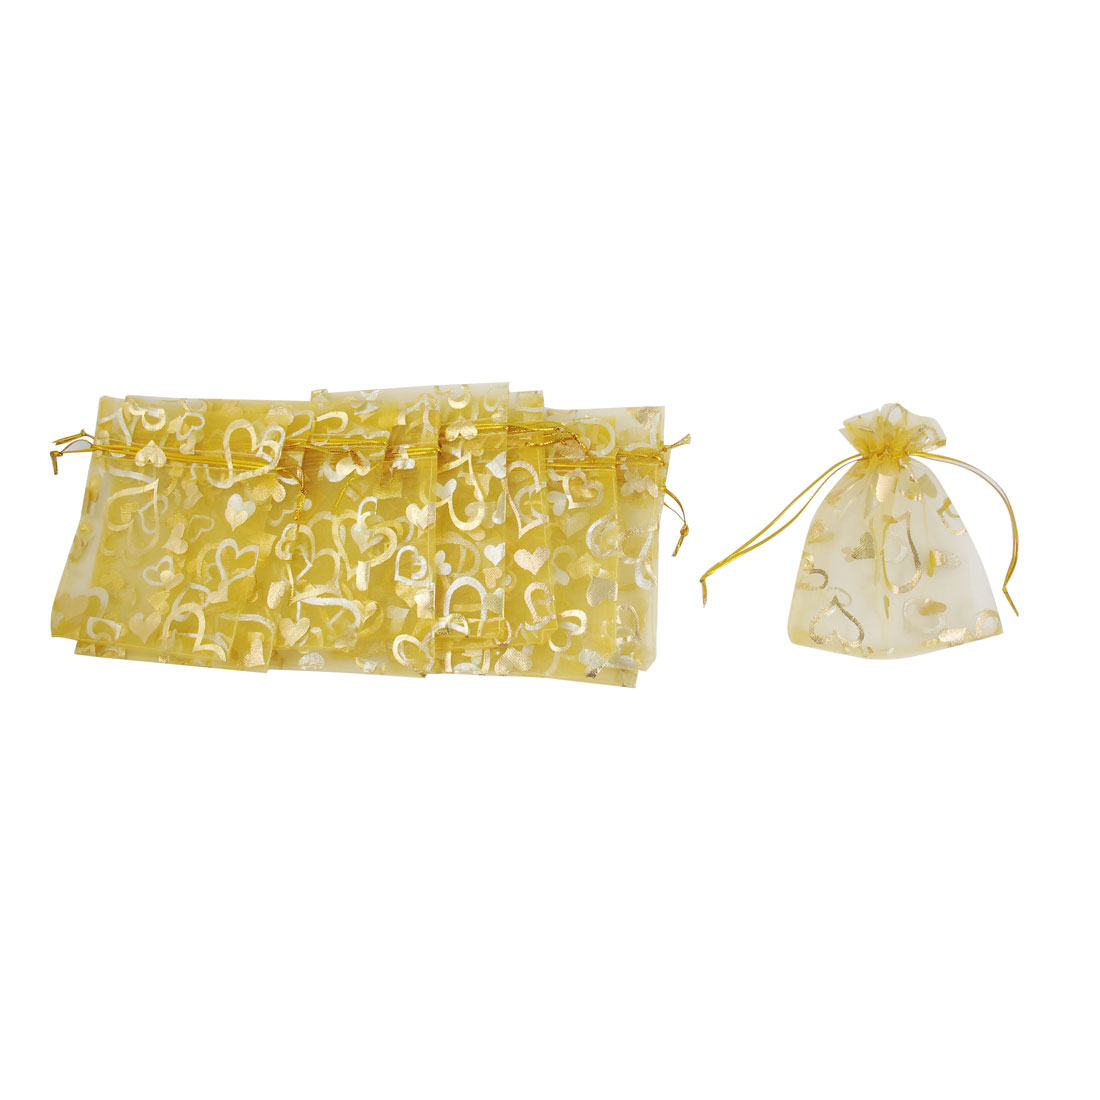 10 Pcs Yellow Hearts Pattern Wedding Christmas Gift Organza Pouch Bag Holder